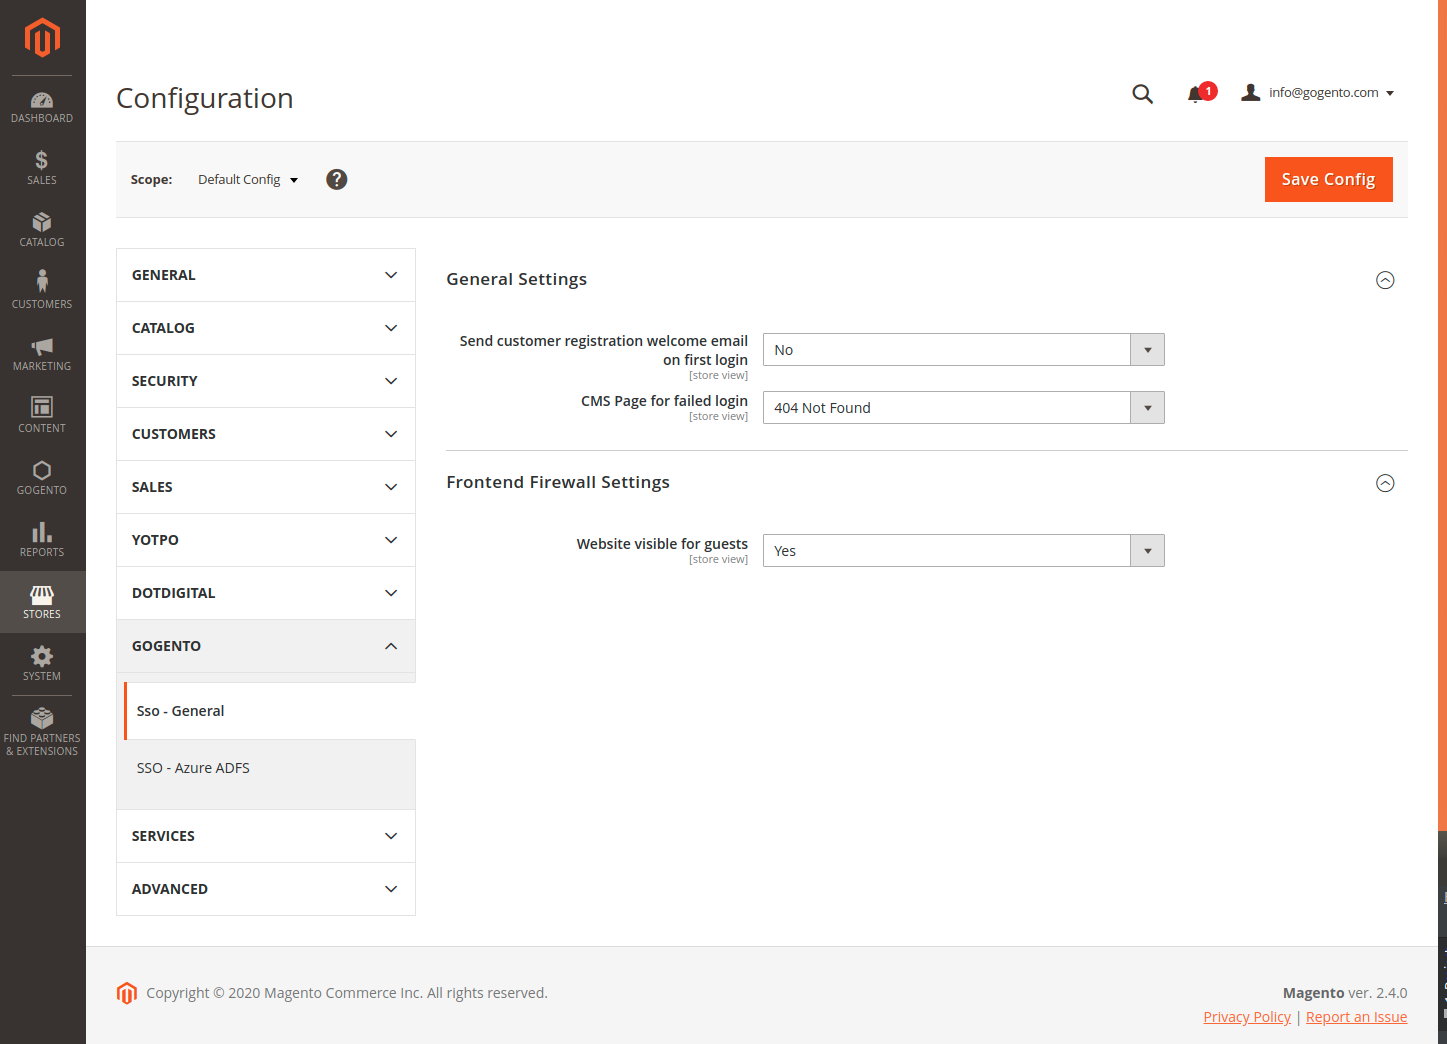 General Single Sign-On Settings in the Magento Backend